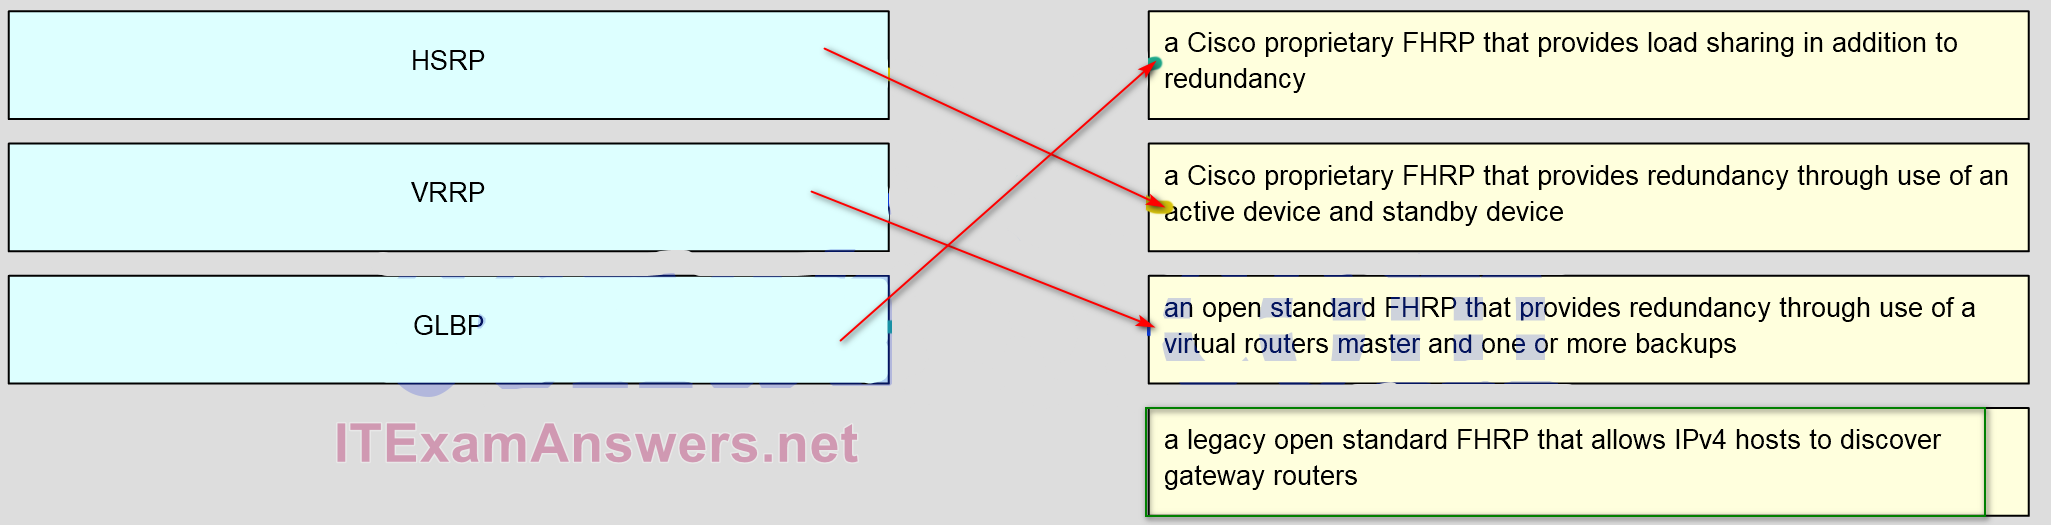 CCNA 4 Connecting Networks v6.0 - CCNA (ICND2) Cert Practice Exam Answers 22